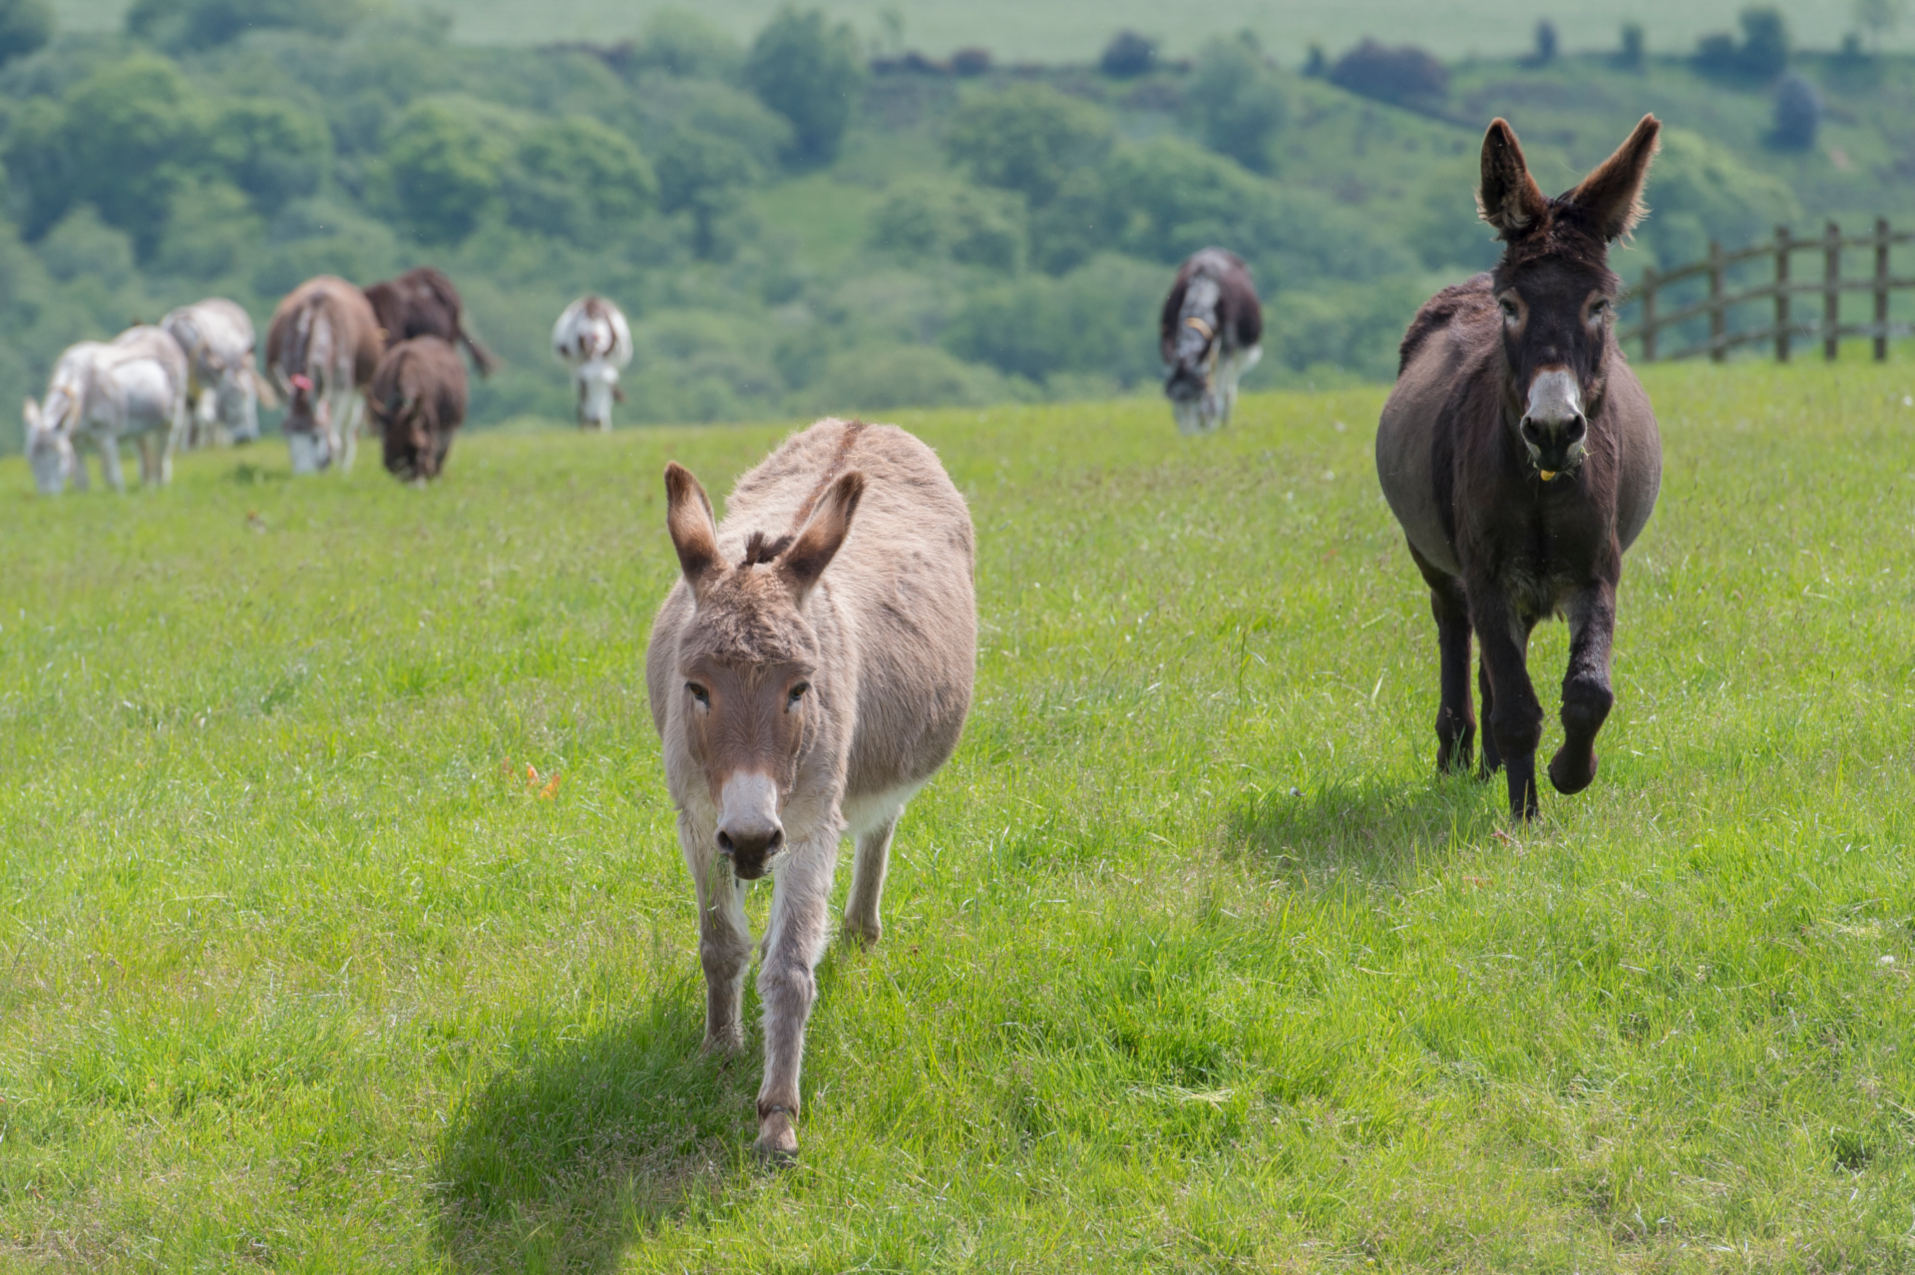 Donkeys running through pasture